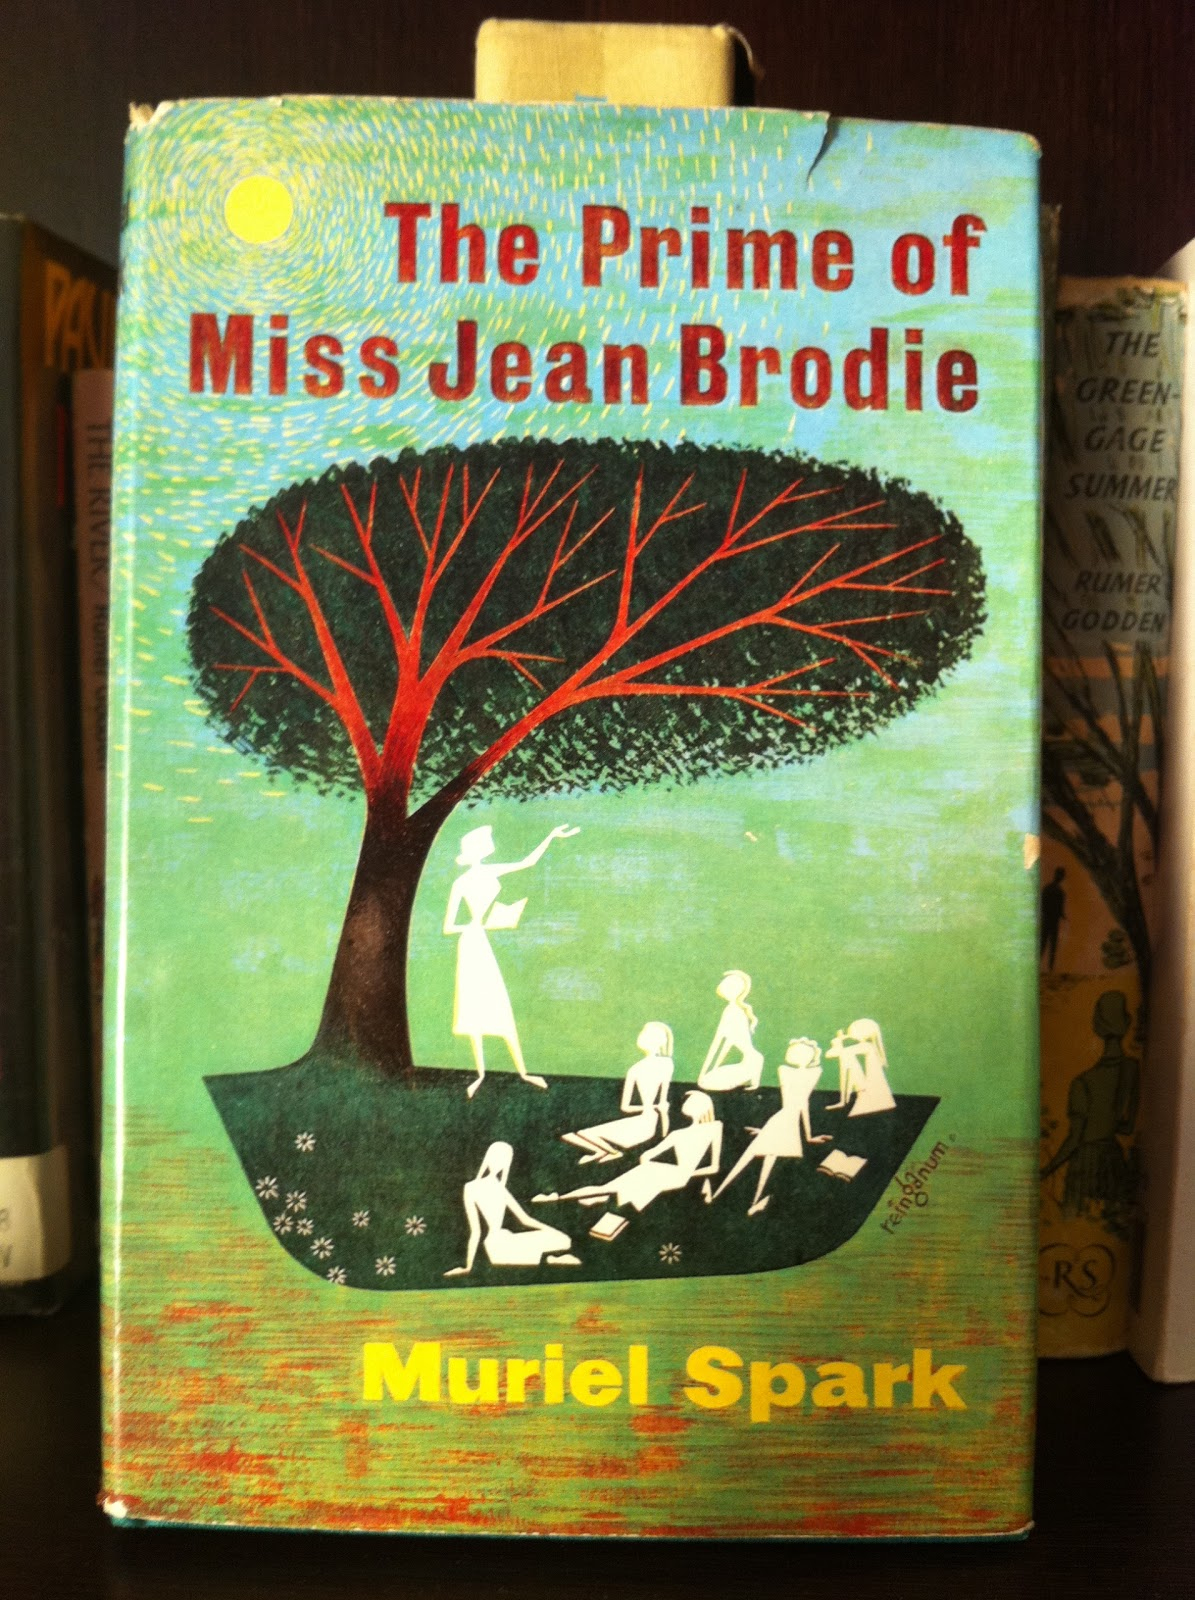 jean brodie essays Find free prime of miss jean brodi essays, term papers, research papers, book reports  the prime of miss jean brodie in the prime of miss jean brodie.